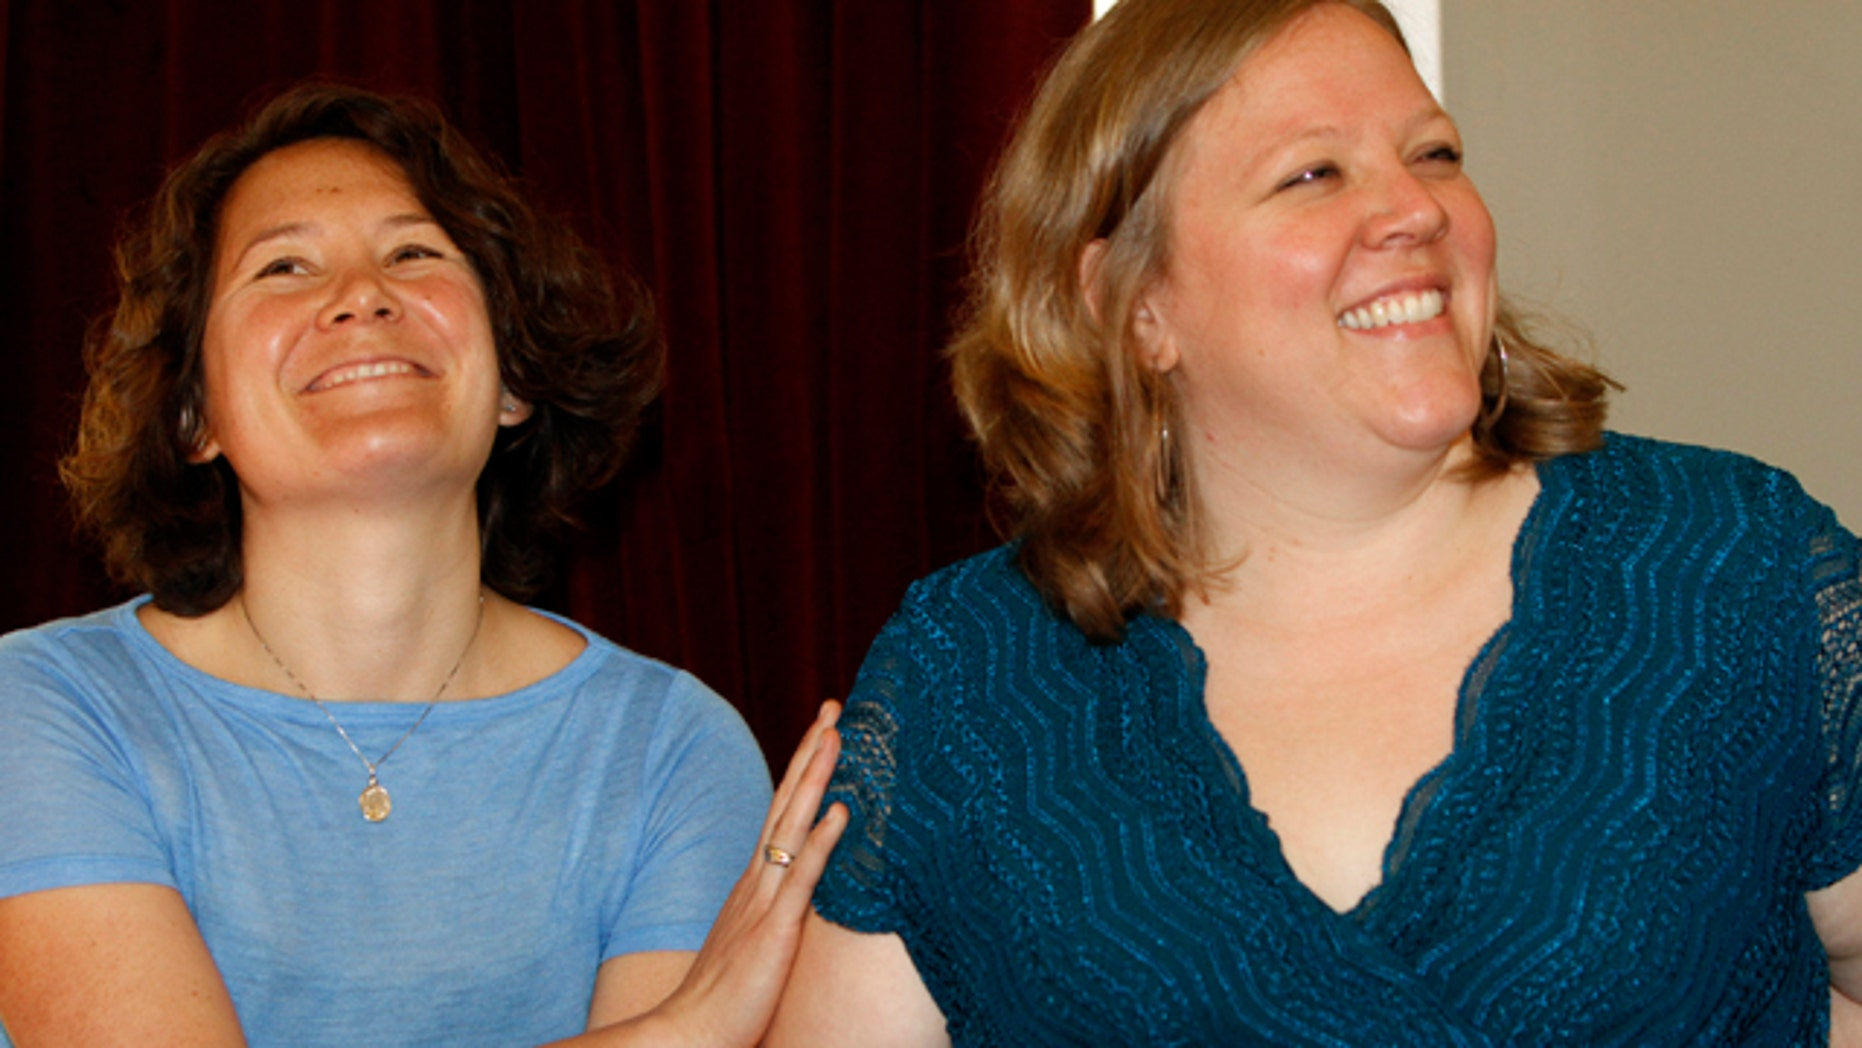 July 19: Ming Linsley, left, and Kate Baker smile during a news conference in Montpelier, Vt. The owners of a Vermont inn that refused to host the lesbian couple's wedding reception say they have no policy to discriminate against same-sex couples.